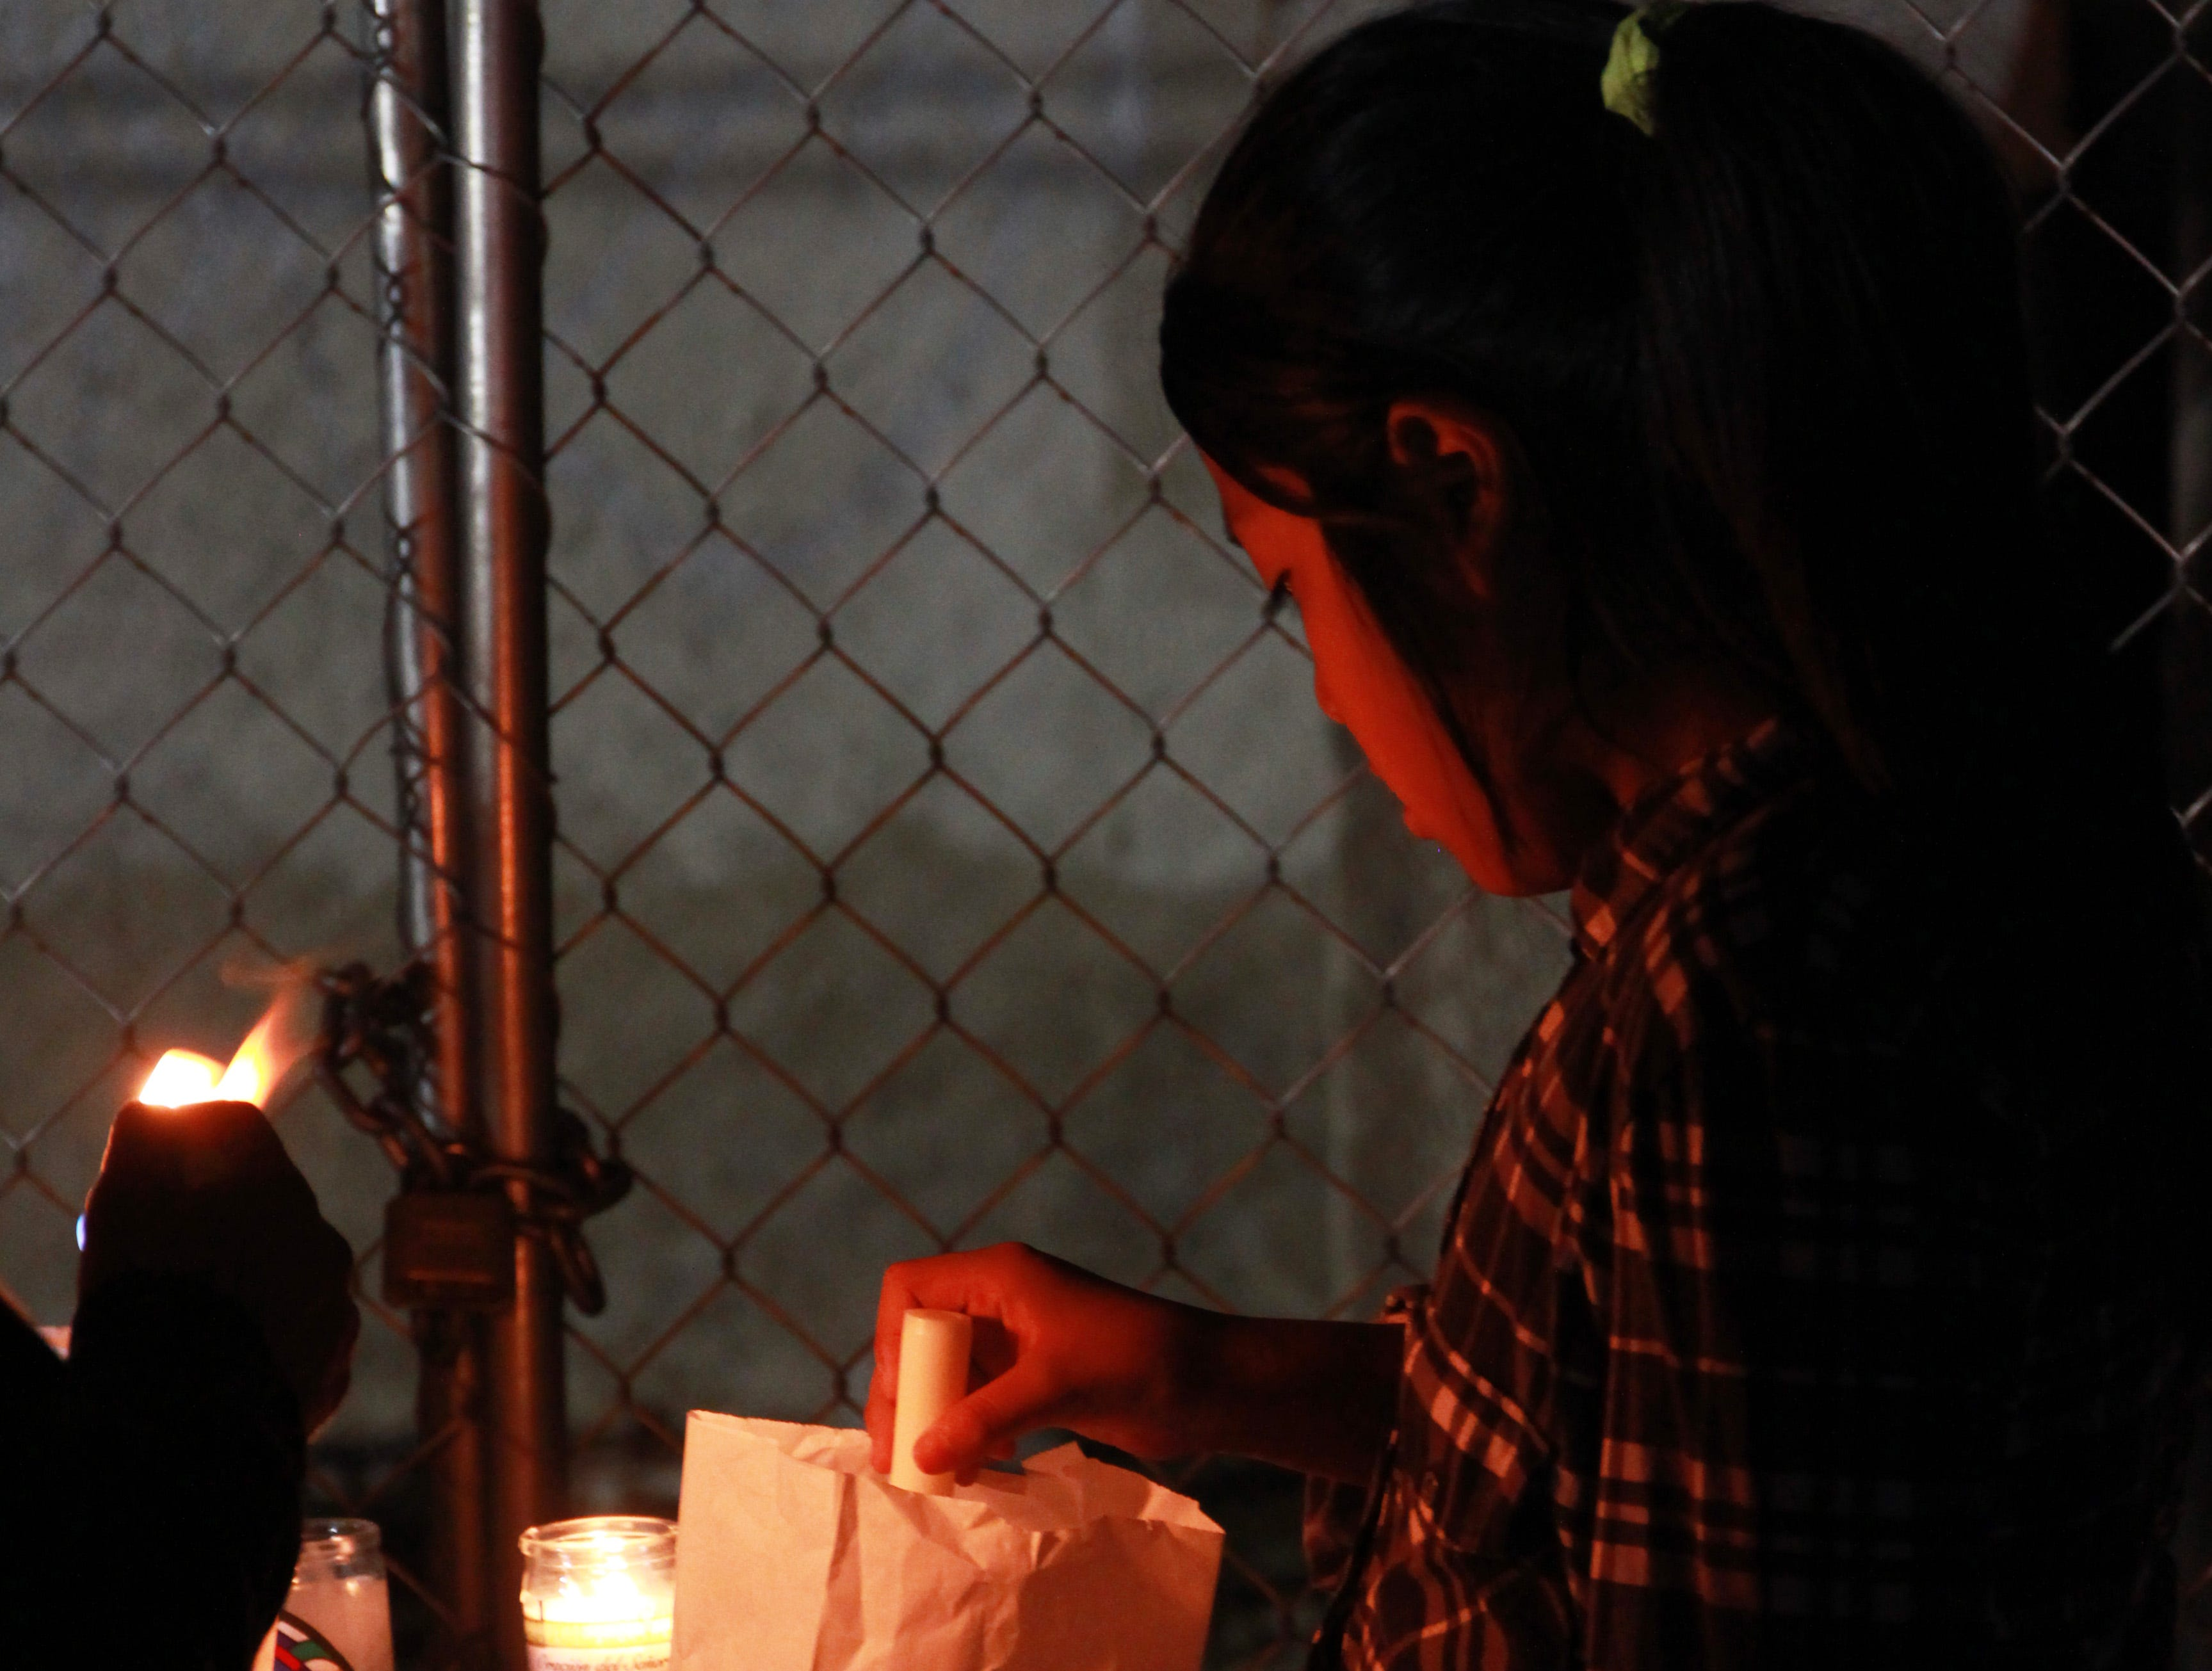 A young girl lights a candle in front of the burned-down church.